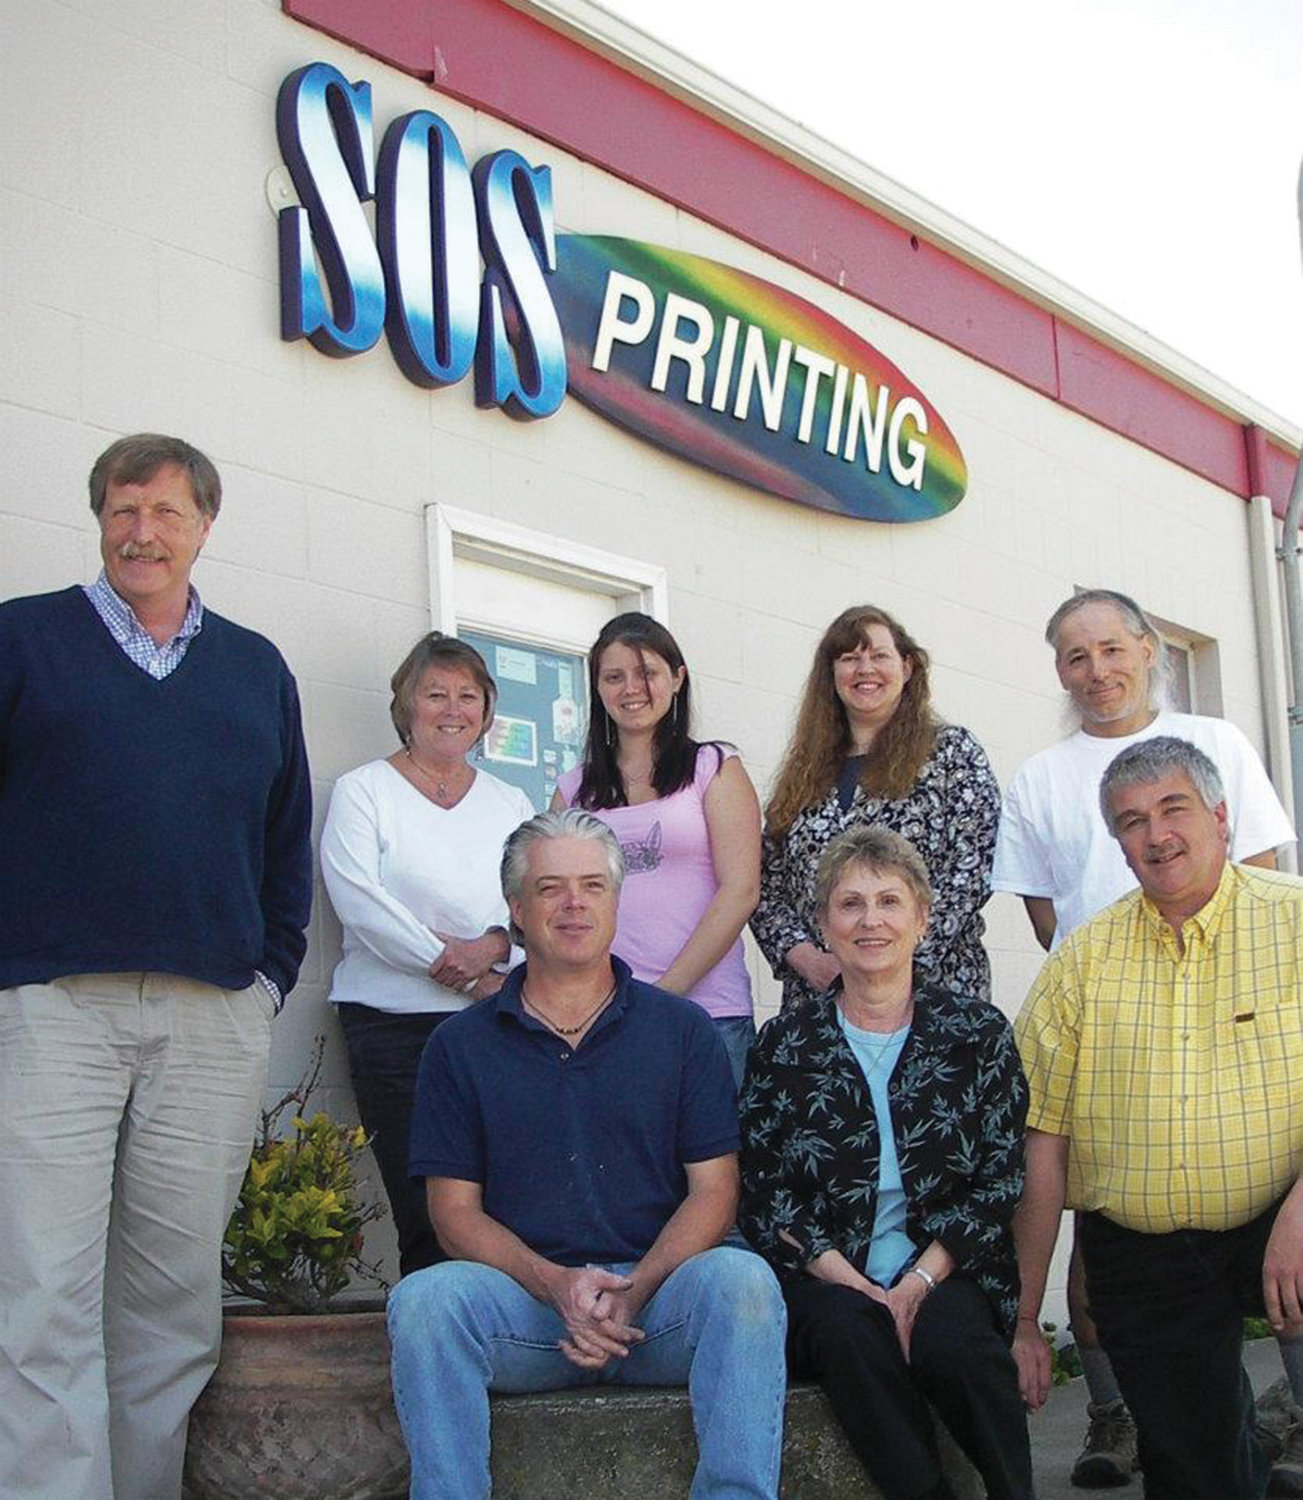 Dan Huntingford, left, with staff members Virginia, Desi, Debbie, Ron, Kim, Jan and Randy, outside of SOS Printing in 2012.